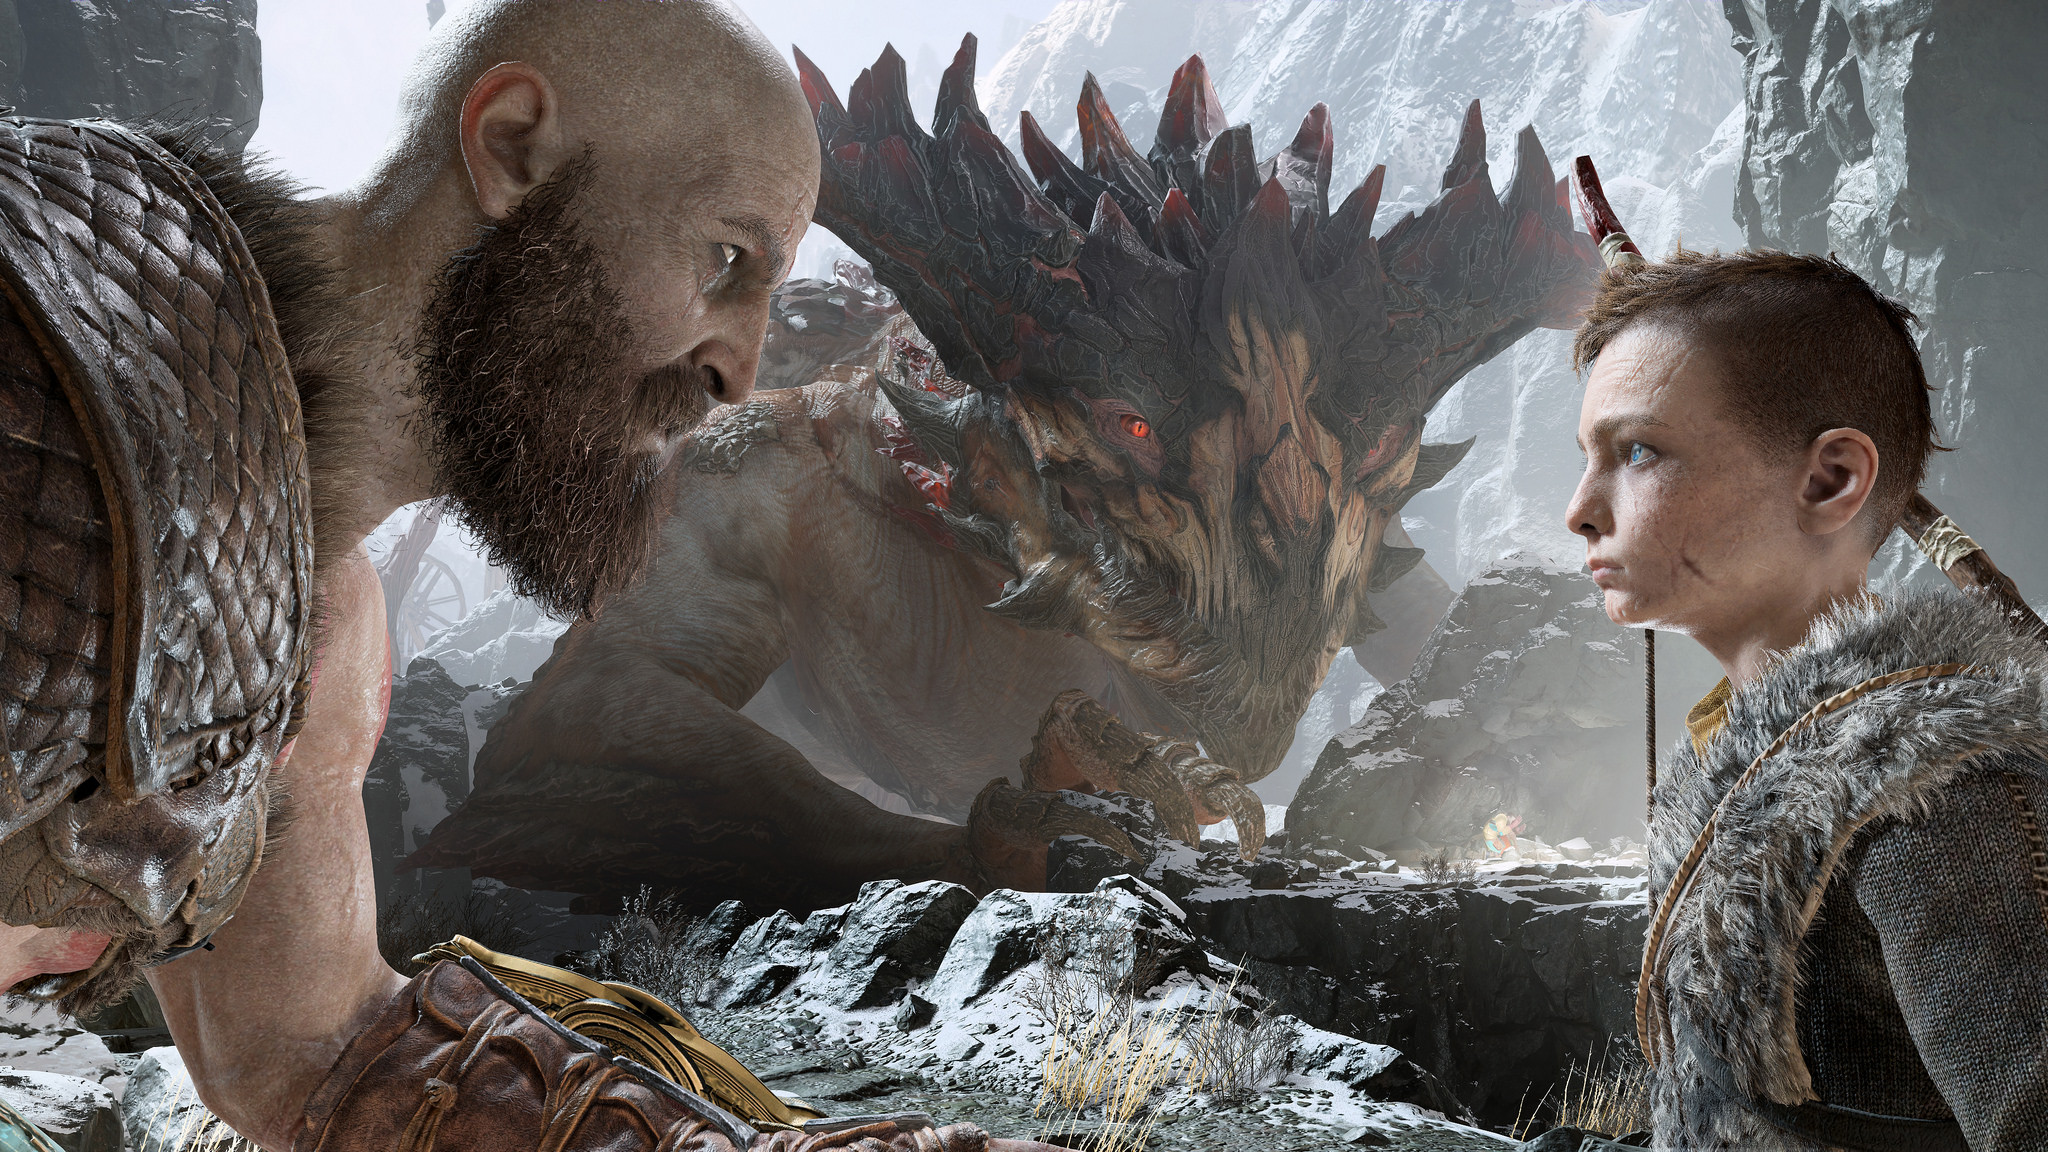 The 'God of War' reboot comes to the PS4 on April 20th